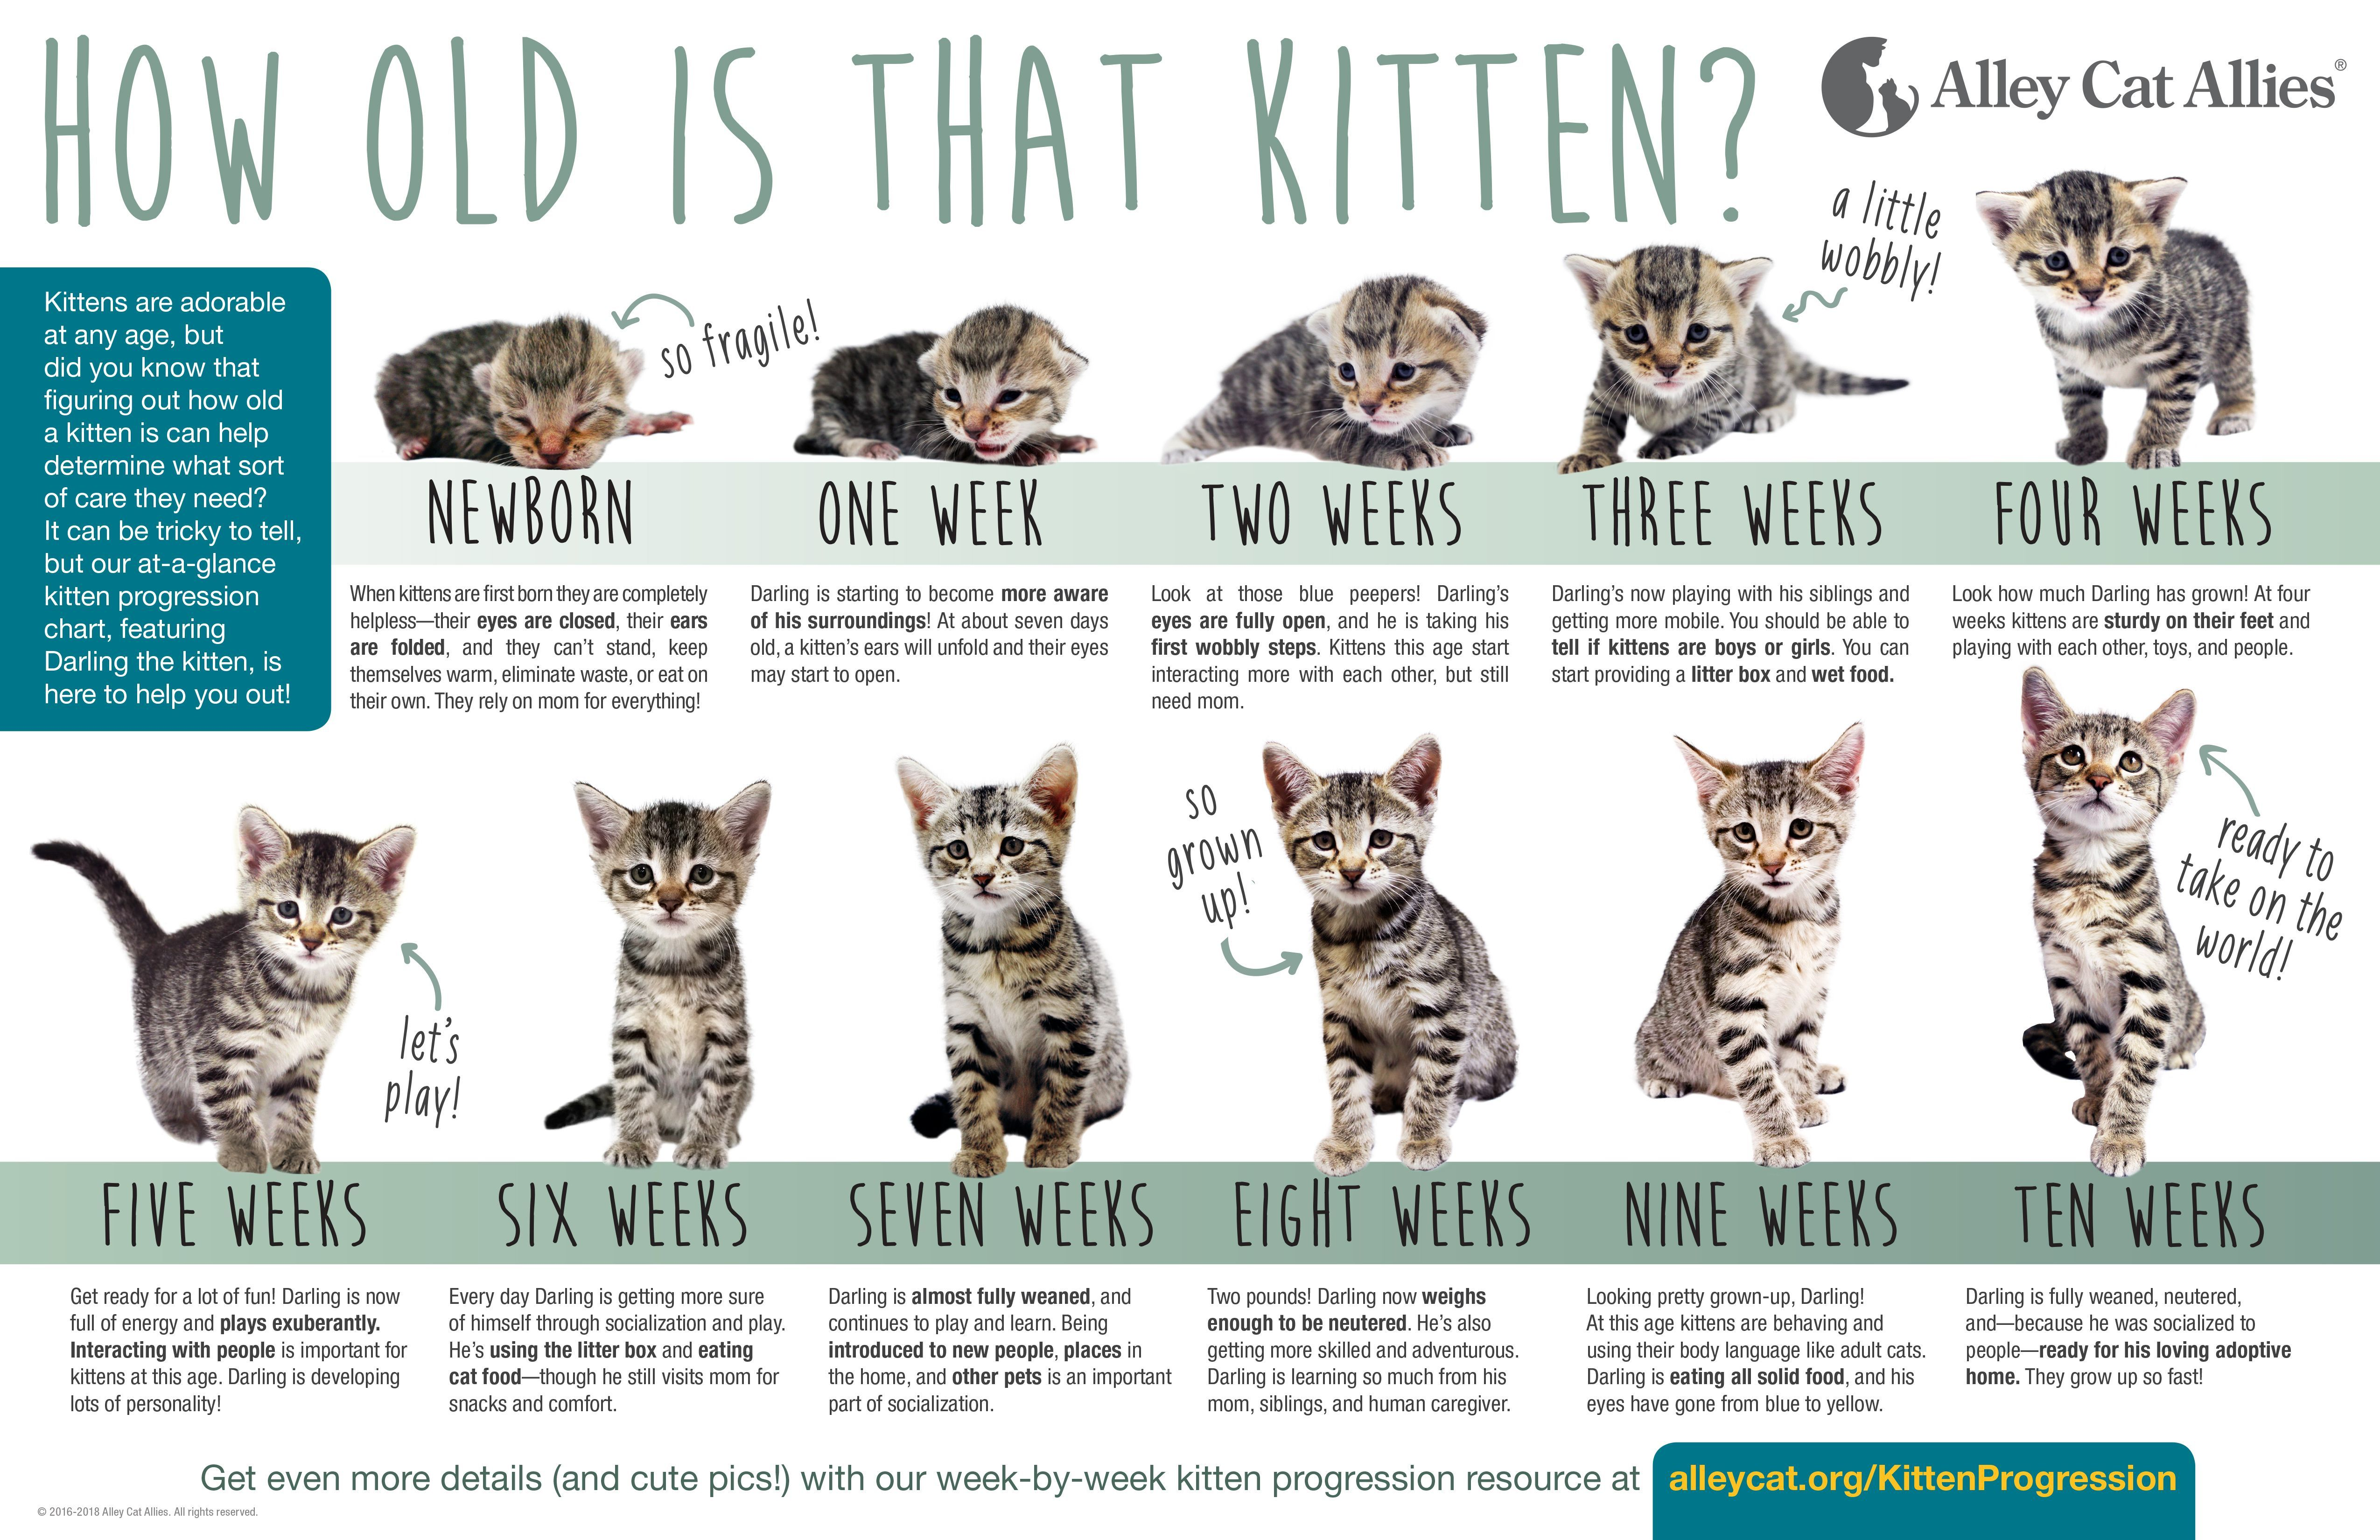 Kittens Kittens Kitten Season Is Here Kittens101 Kitten Season Alley Cat Allies Newborn Kittens